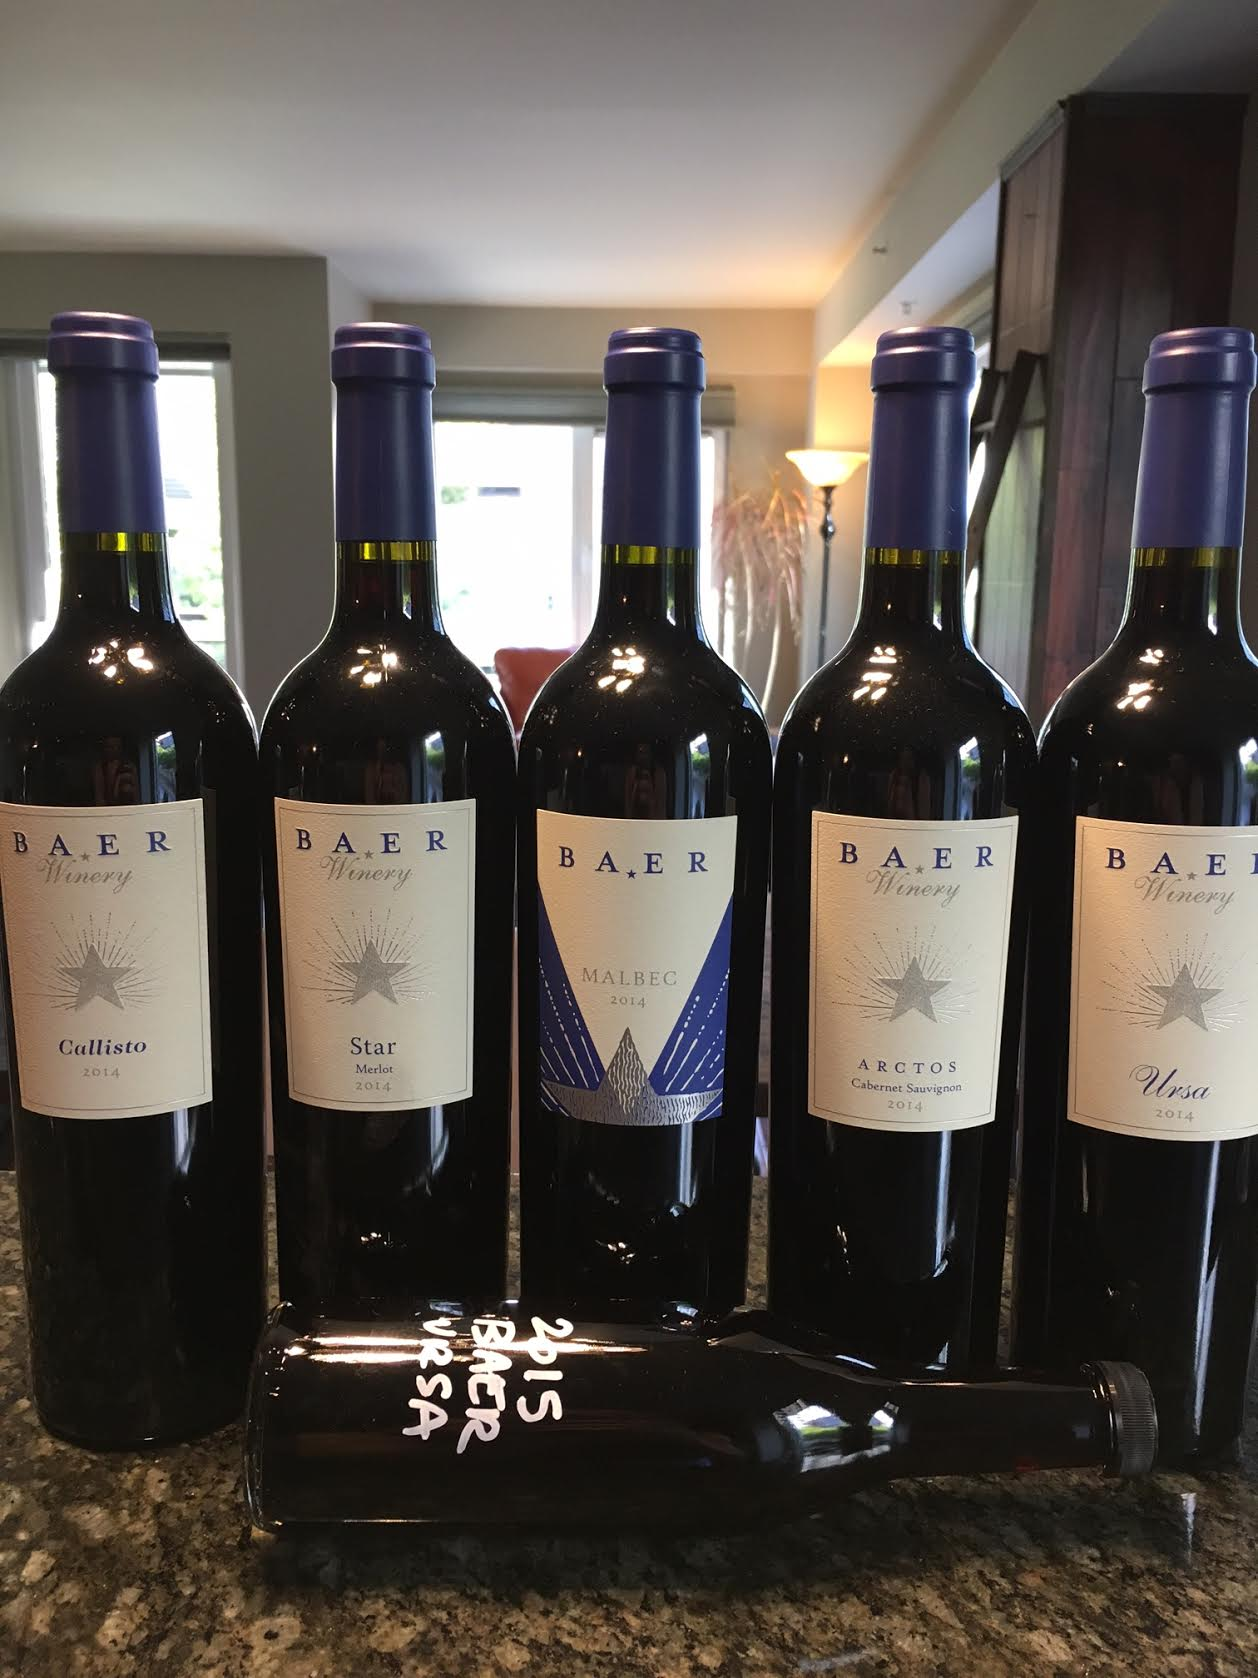 Stunning lineup of Baer red wines.